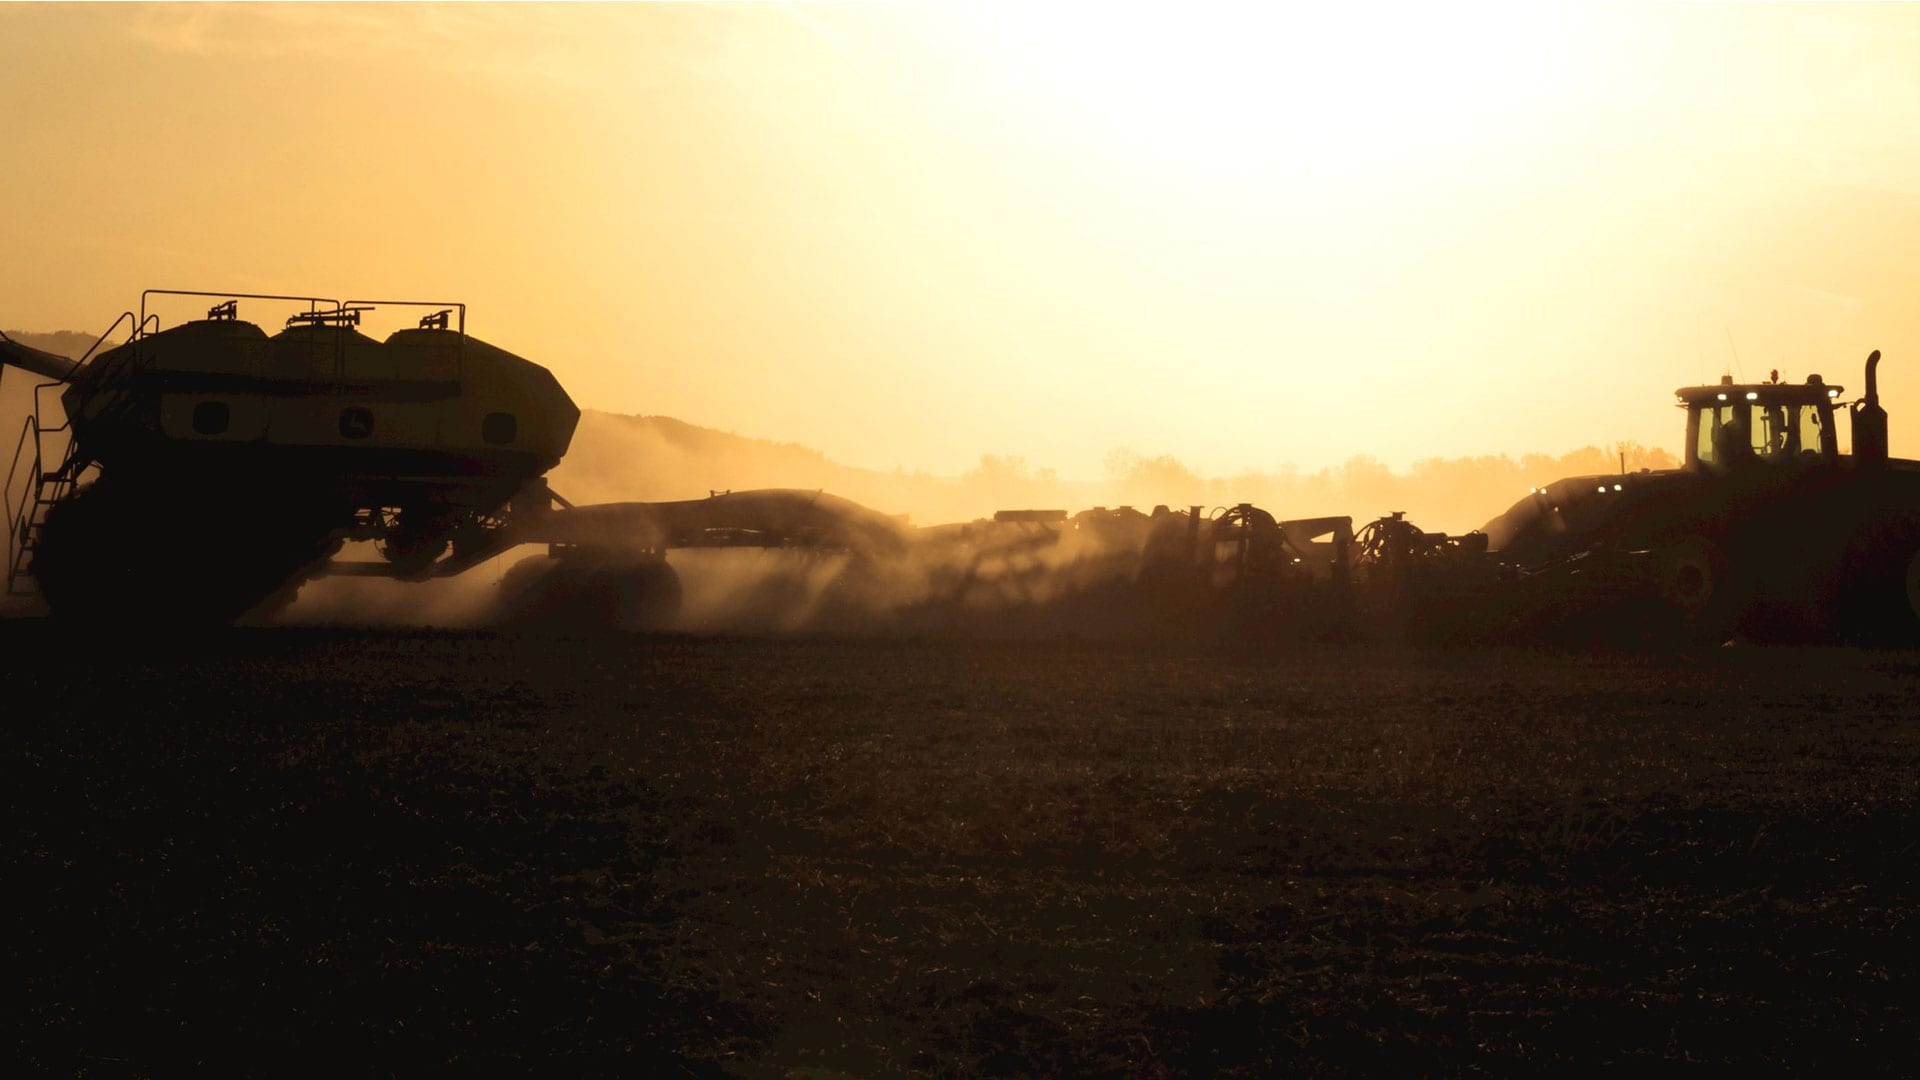 sunrise/sunset of seeding equipment out in the field